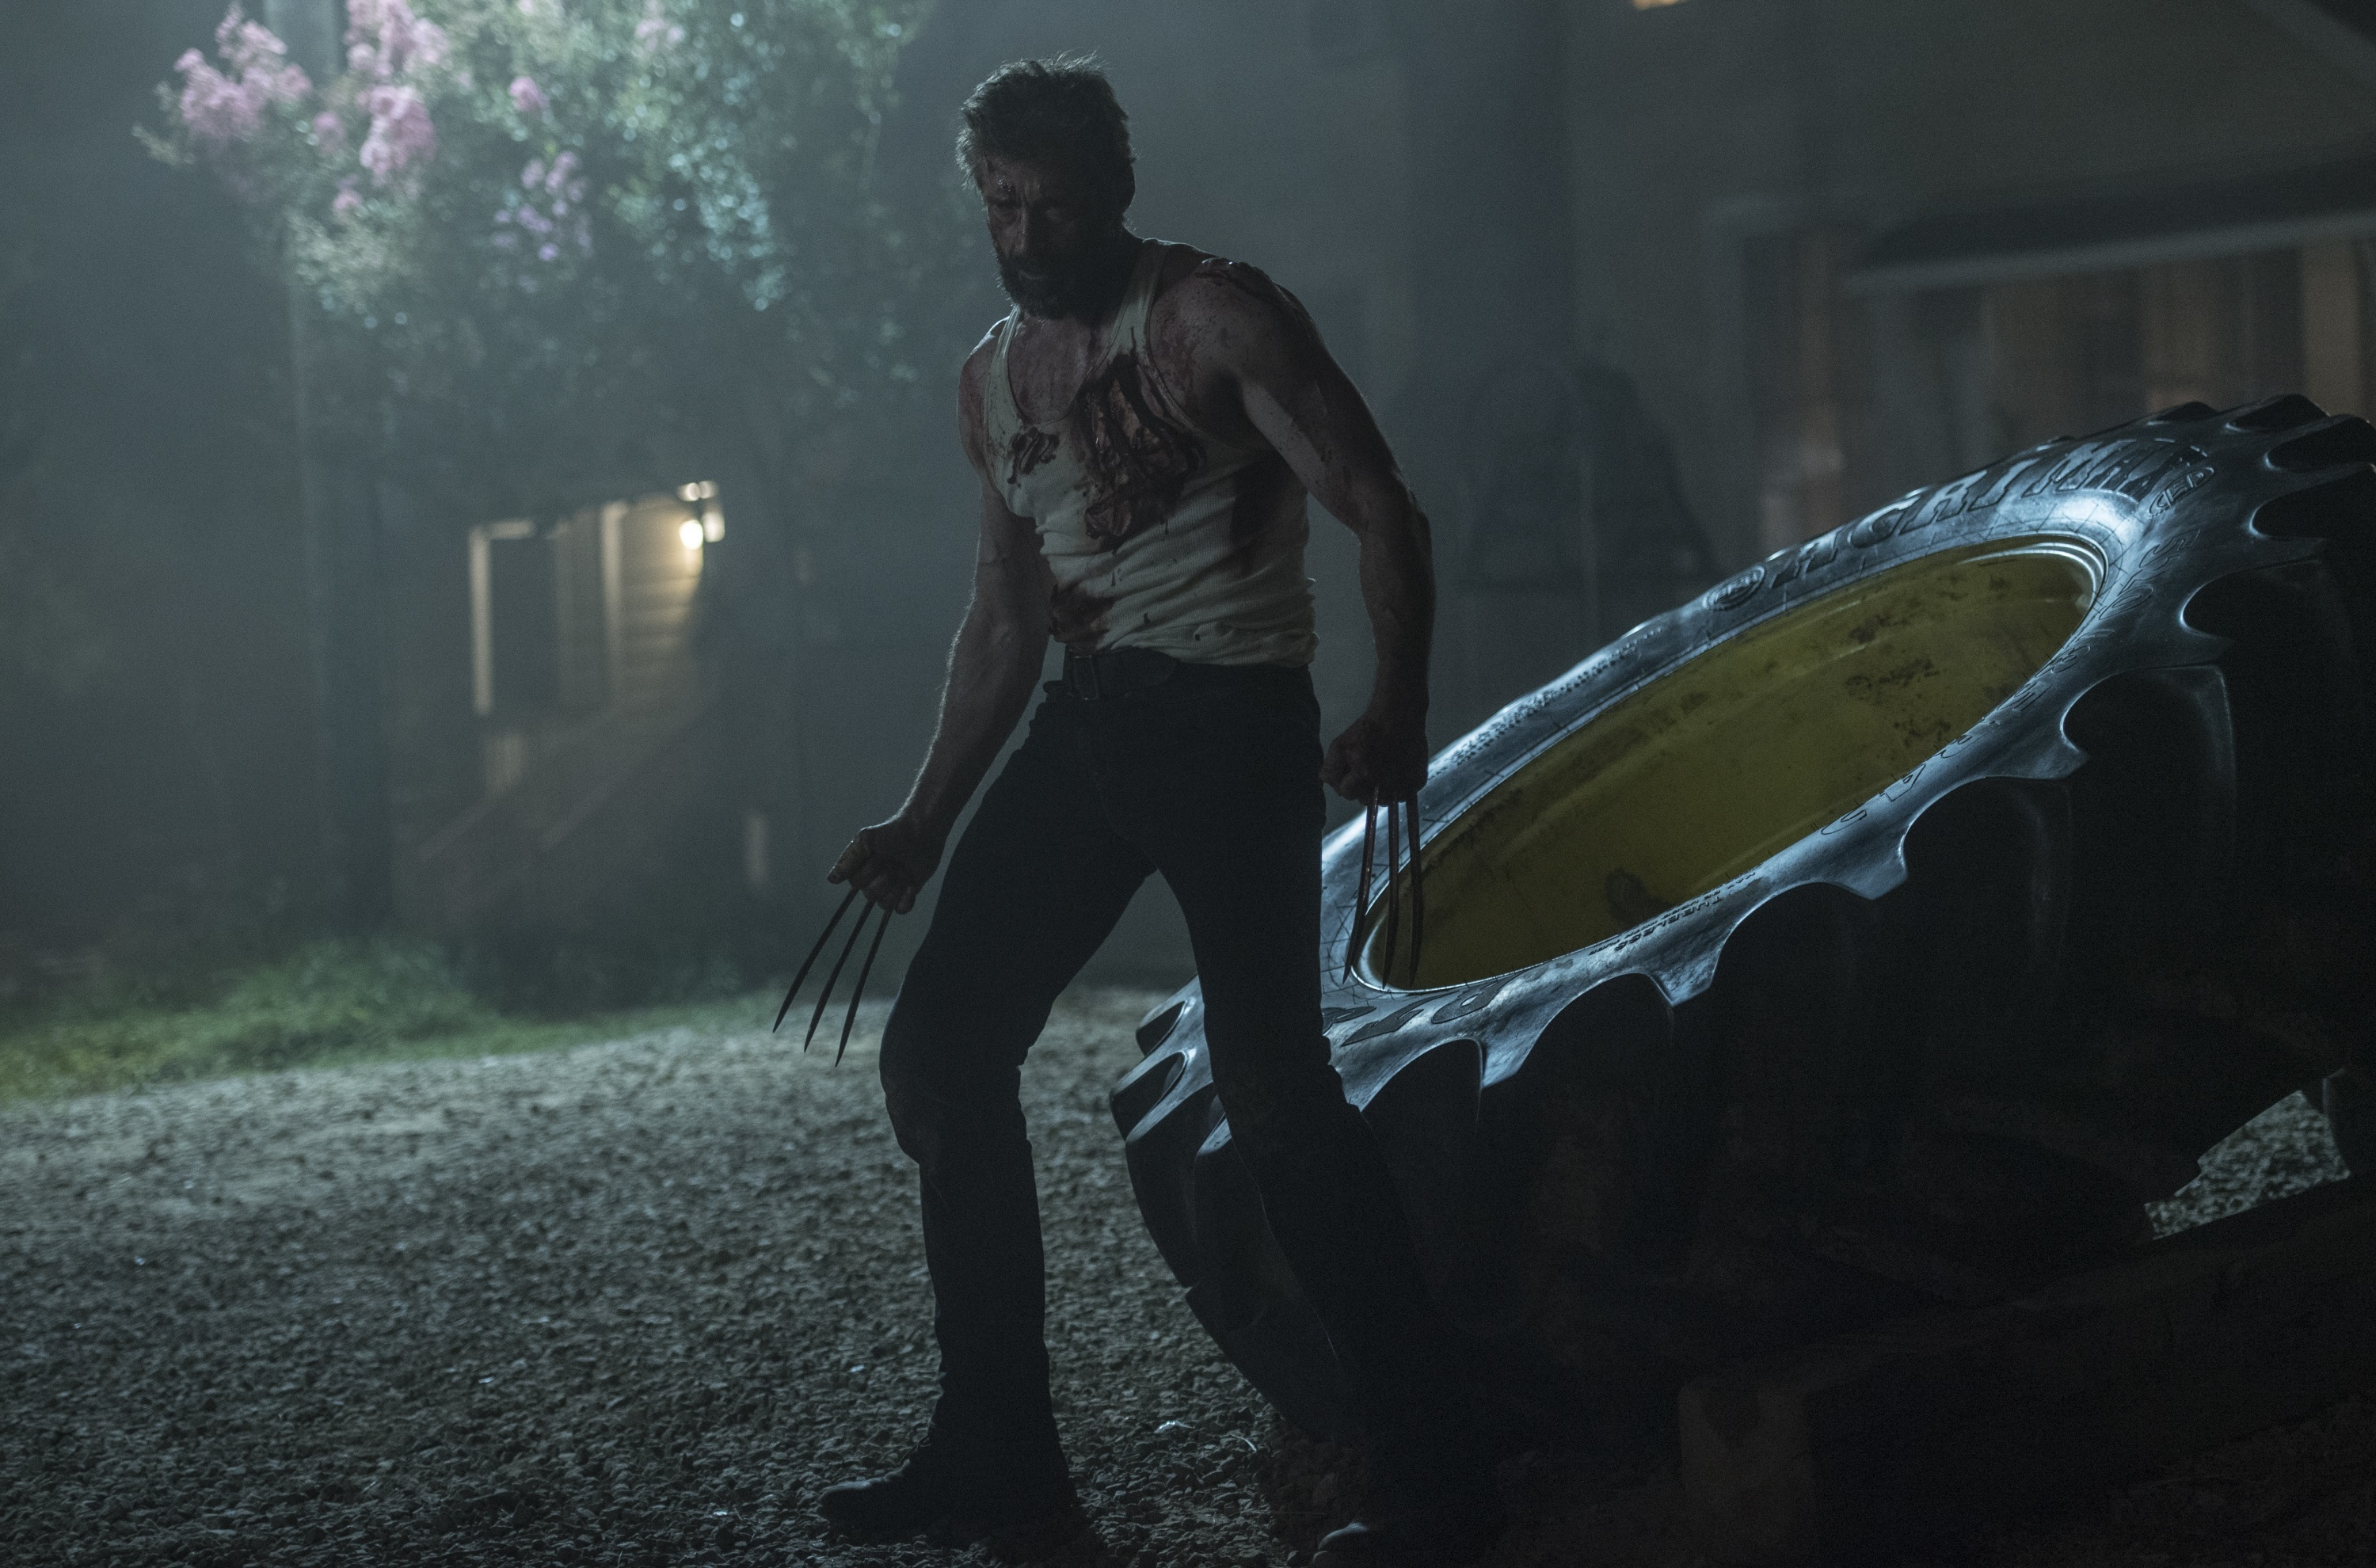 """Hugh Jackman stars as Wolverine in the 2017 film """"Logan,"""" which premiered in the U.S. on March 3."""